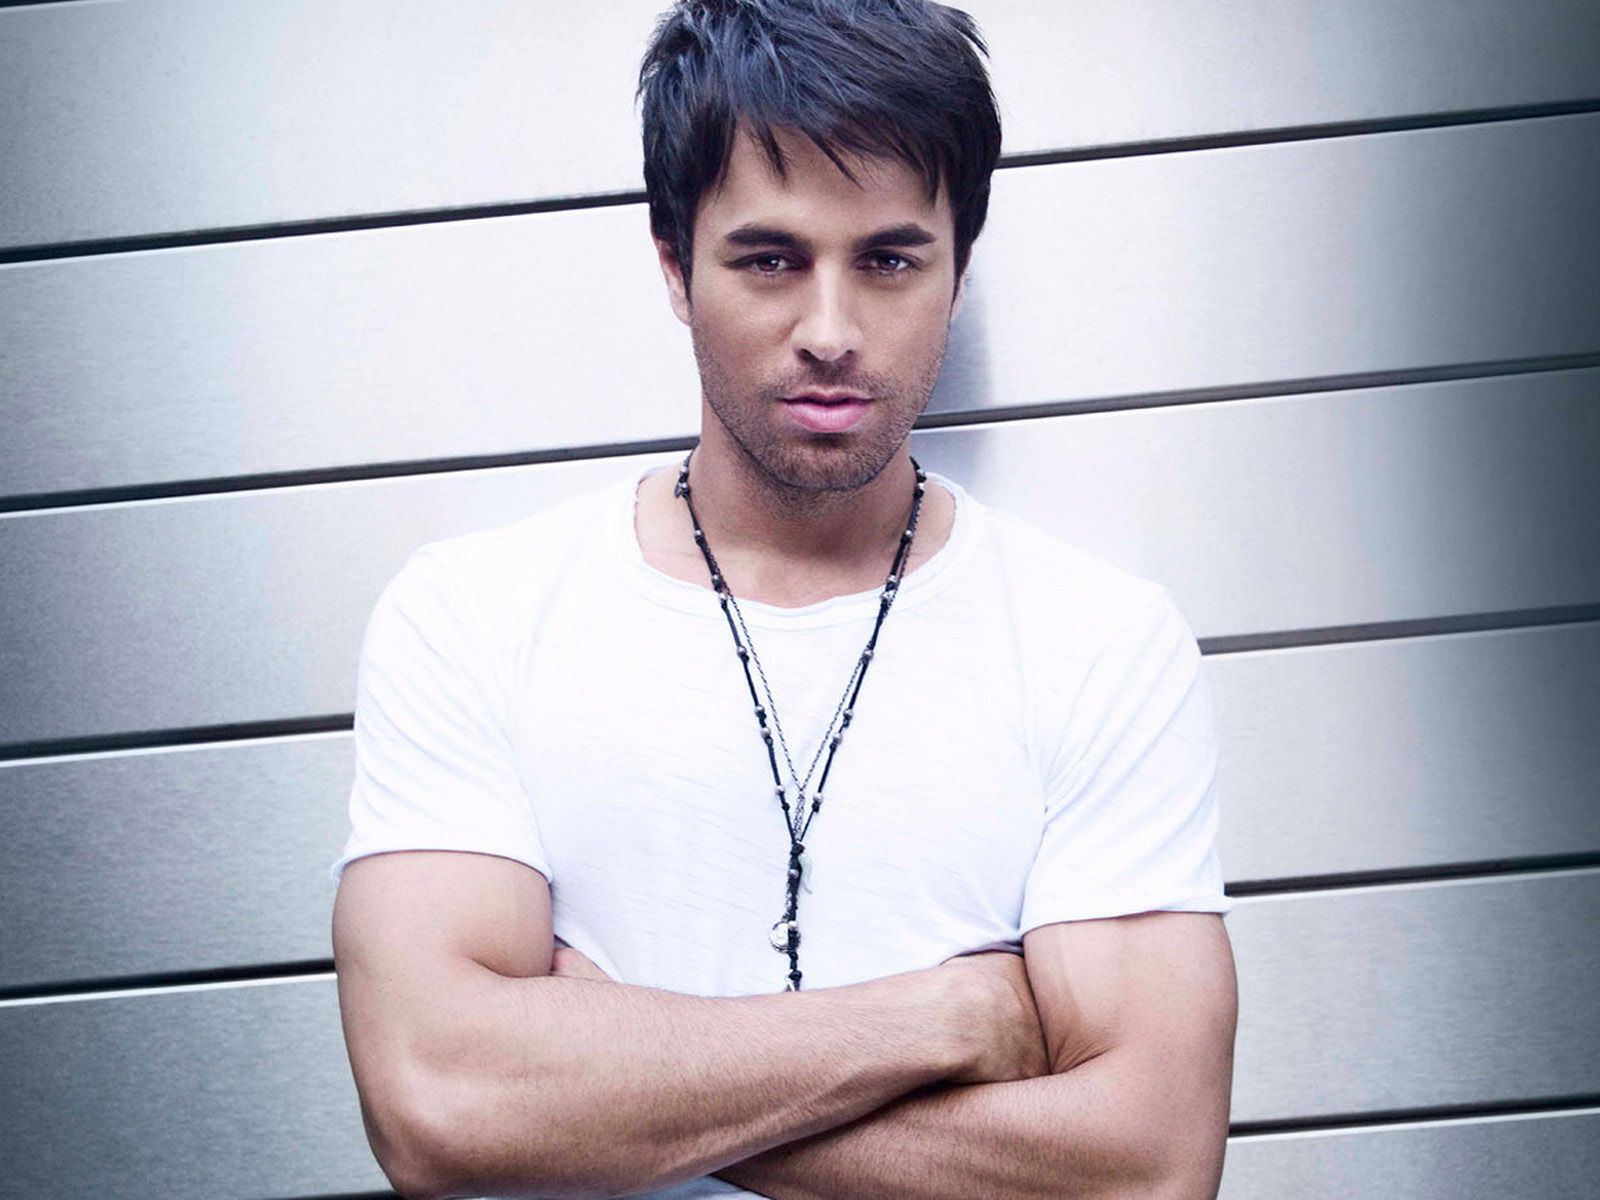 2013 Enrique Iglesias Hairstyles and haircuts.http://dailyhairstyles.net/2013-enrique-iglesias-hairstyles-and-haircut-models.html